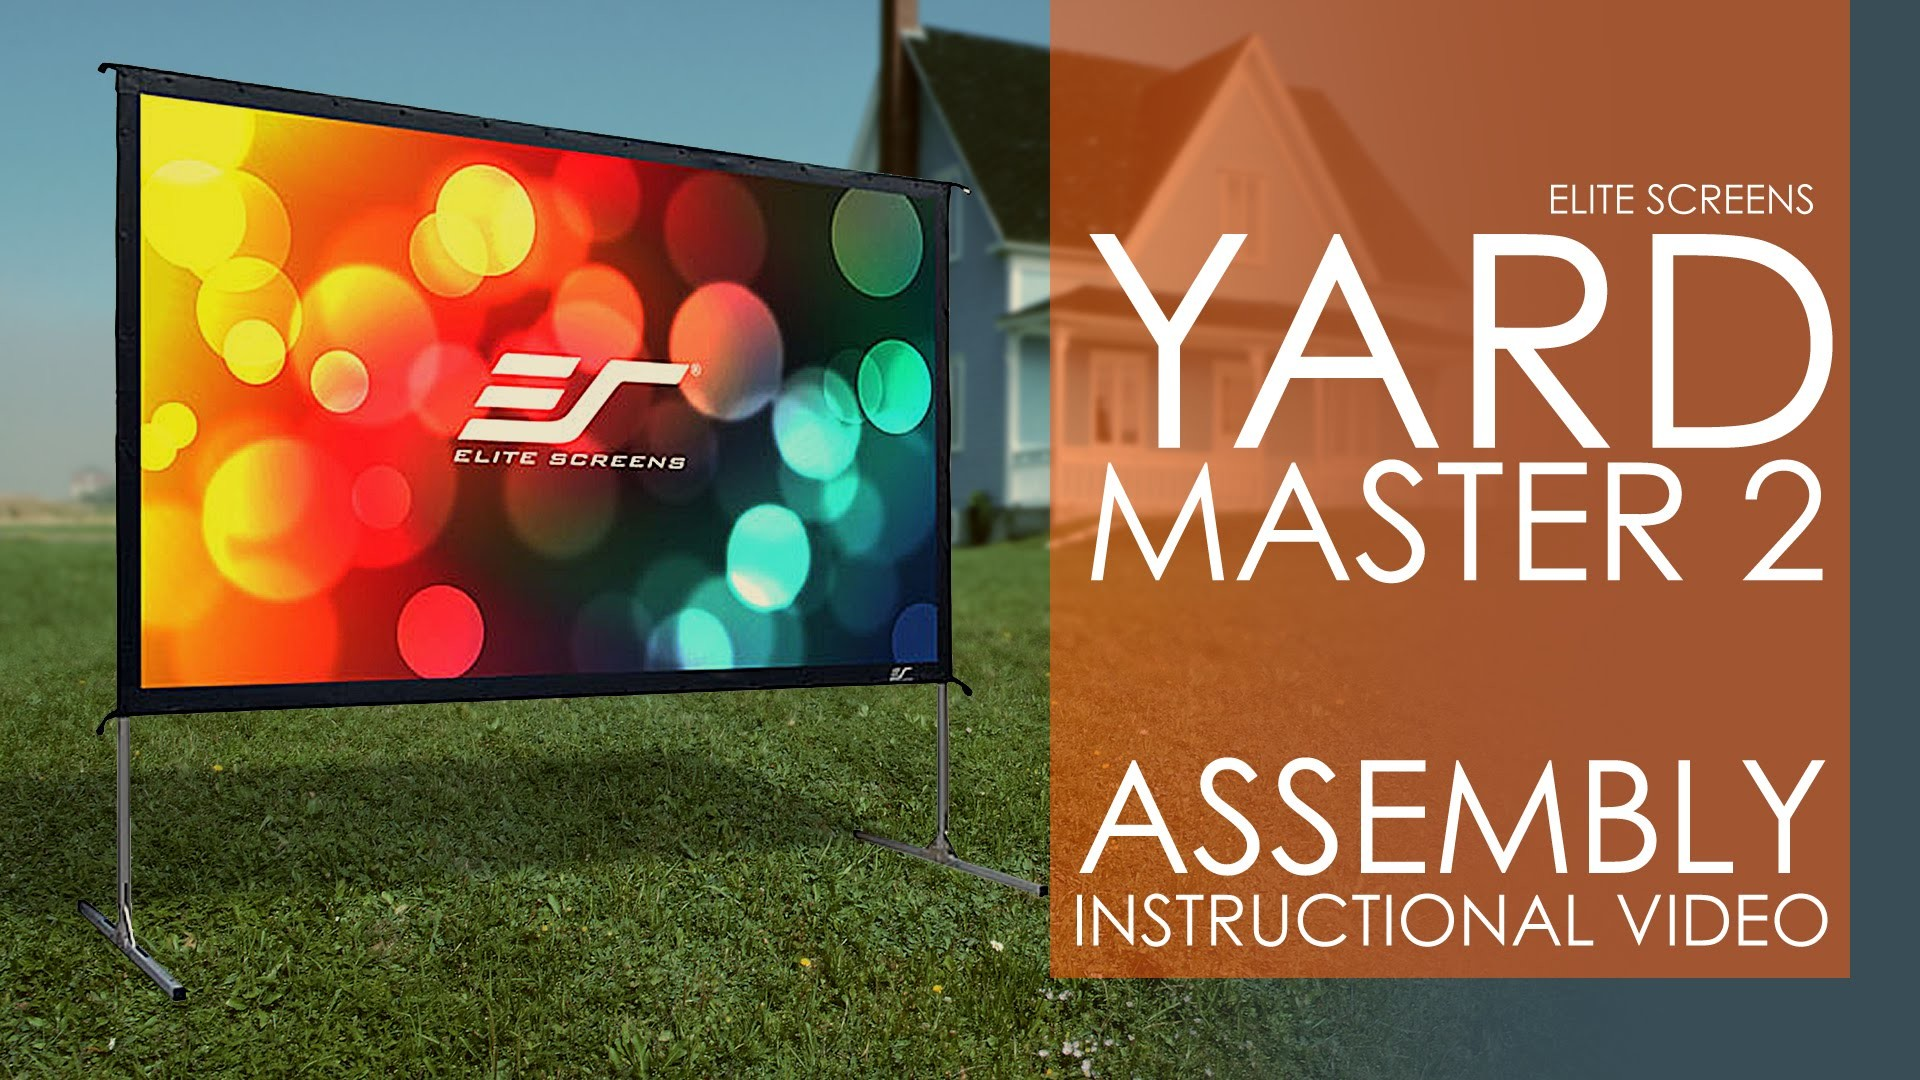 1920x1080 Elite Screens Yard Master 2 Outdoor Projection Screen Setup & Assembly -  YouTube